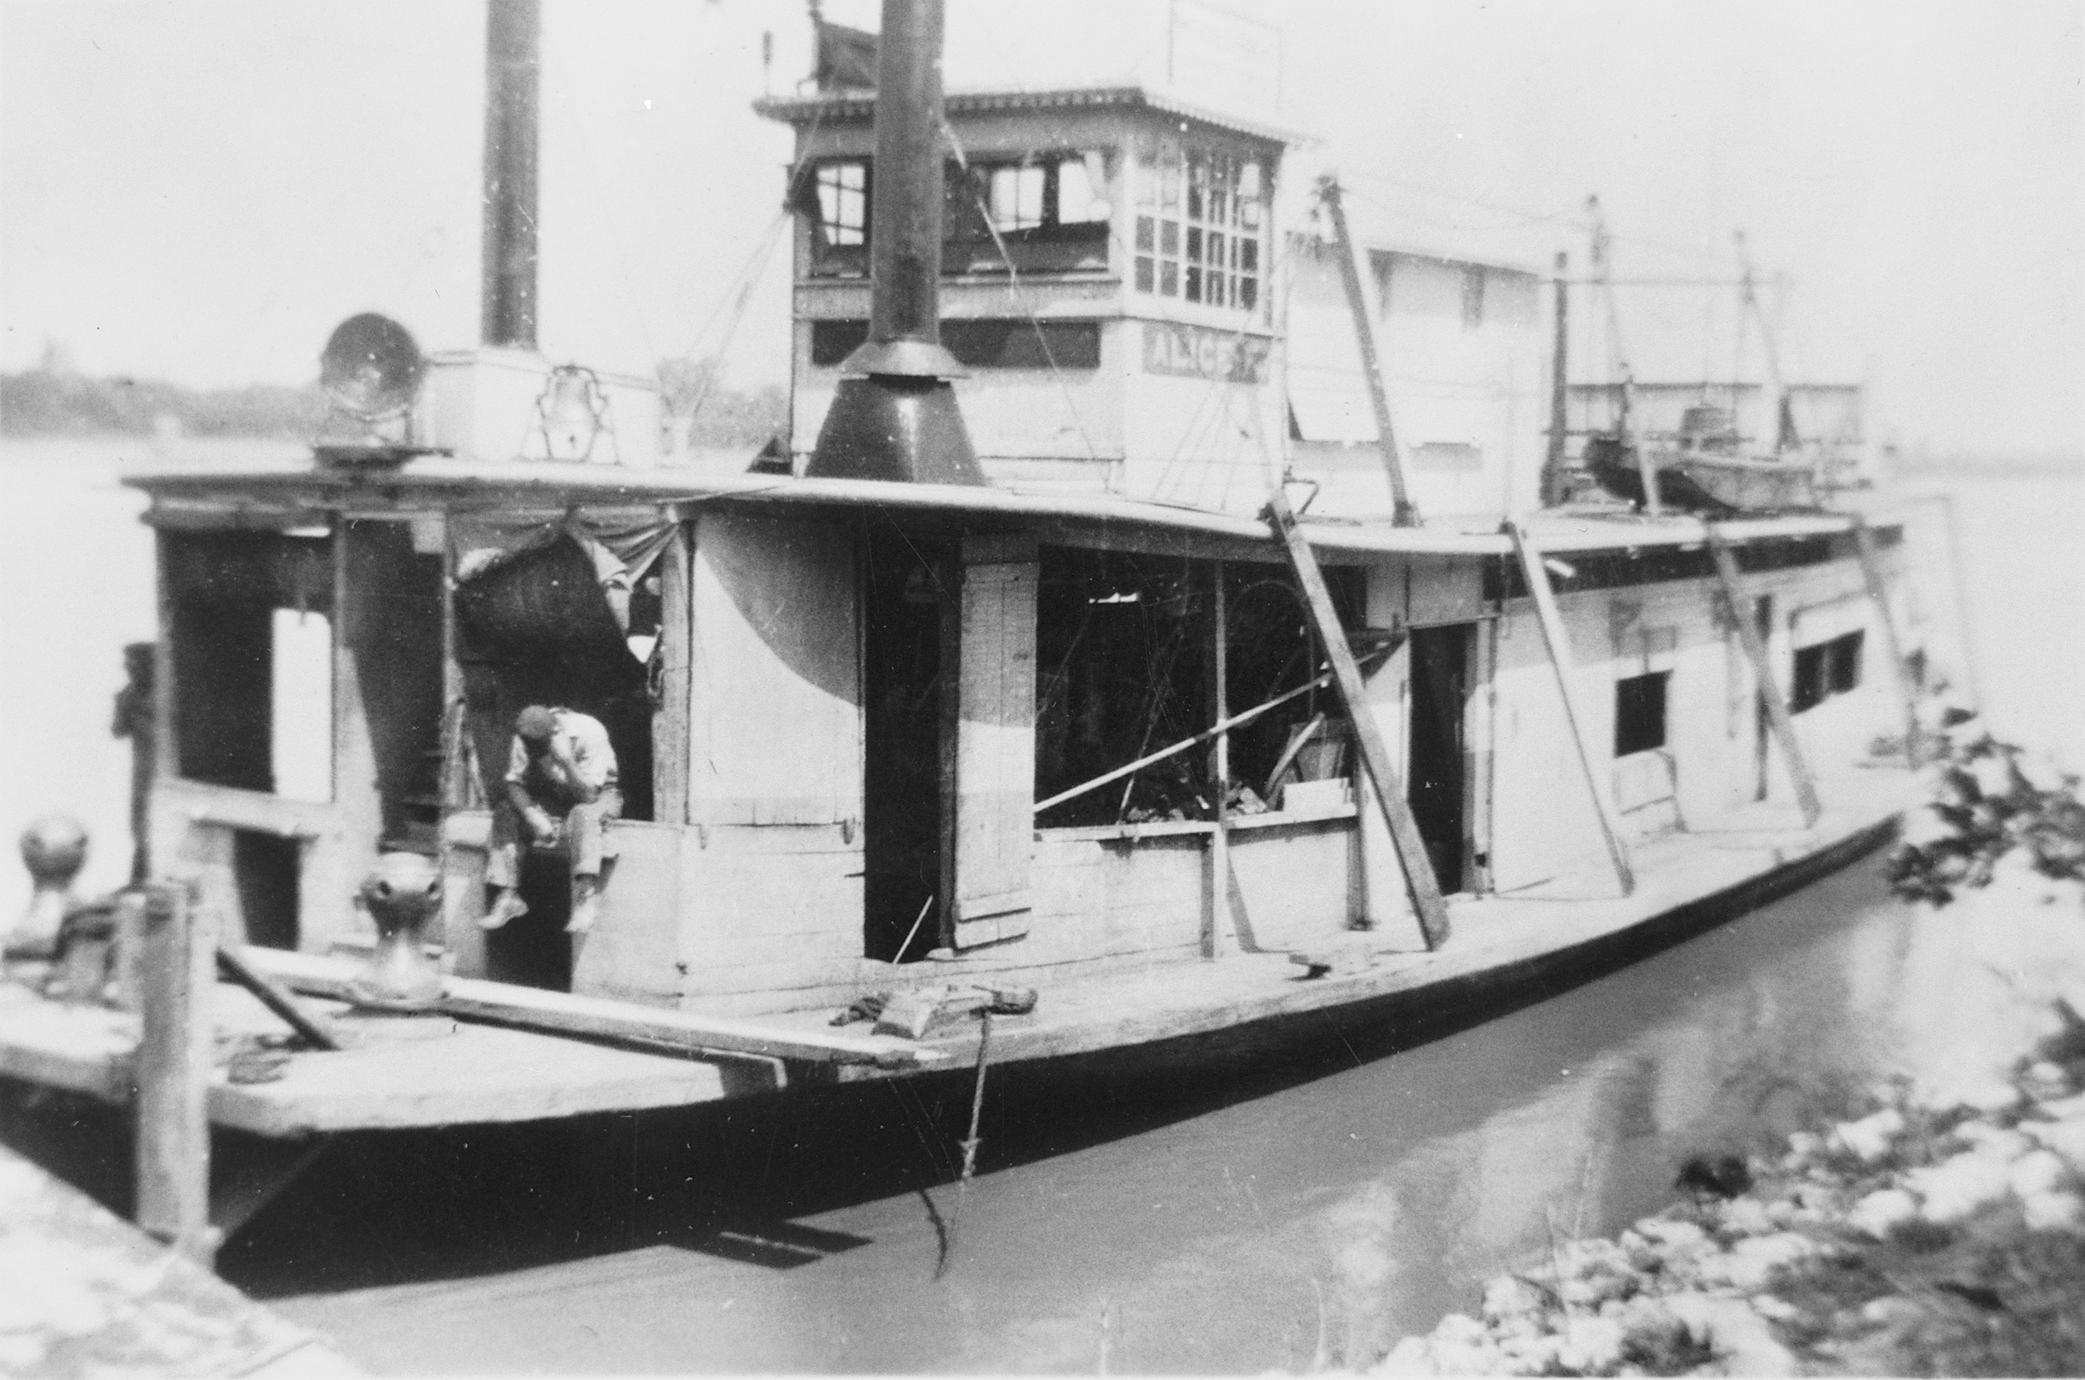 Alice F. (Towboat, 1918-1928)